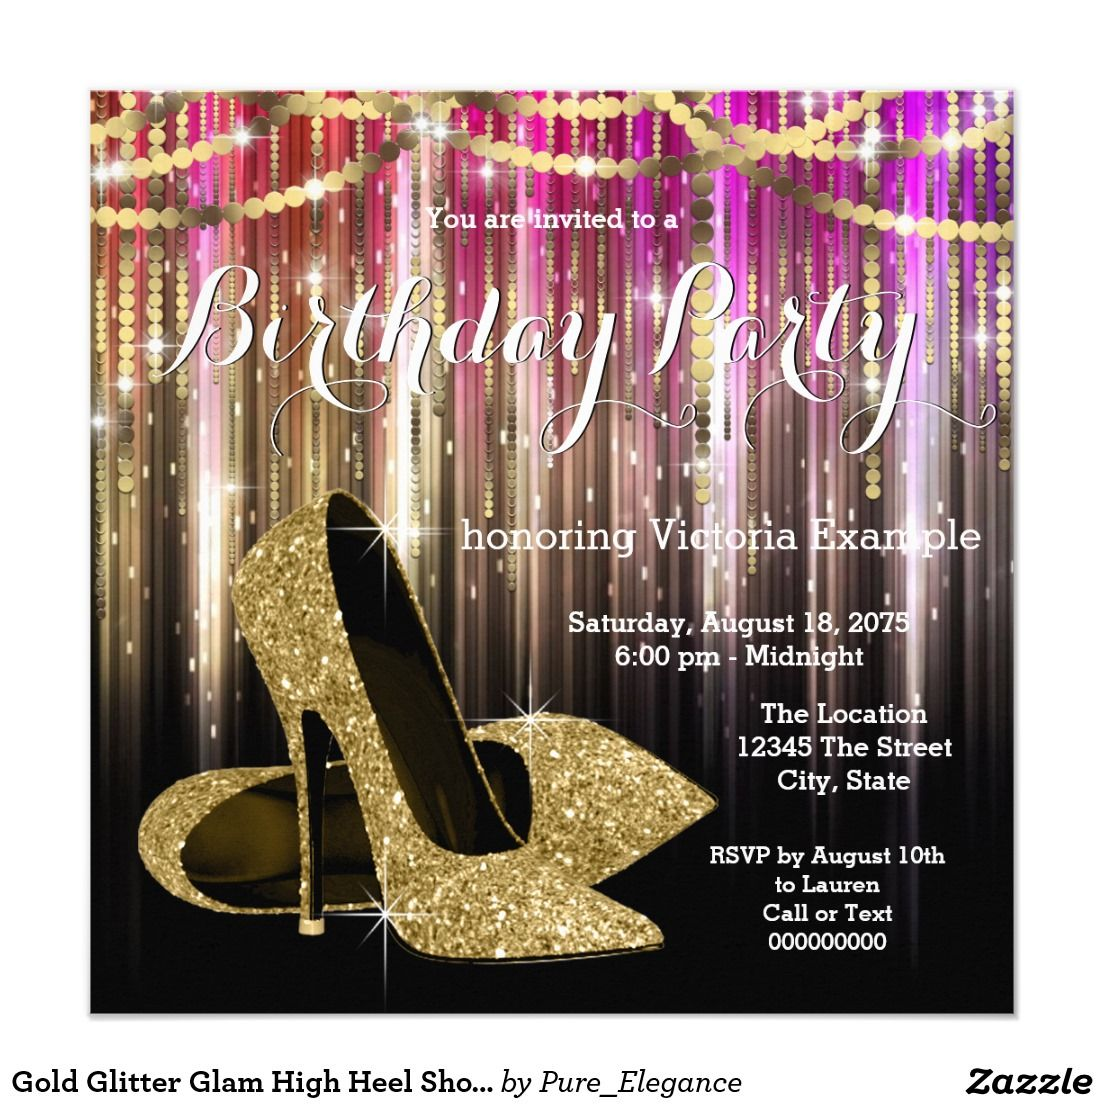 Gold Glitter Glam High Heel Shoe Birthday Party 5.25x5.25 Square ...